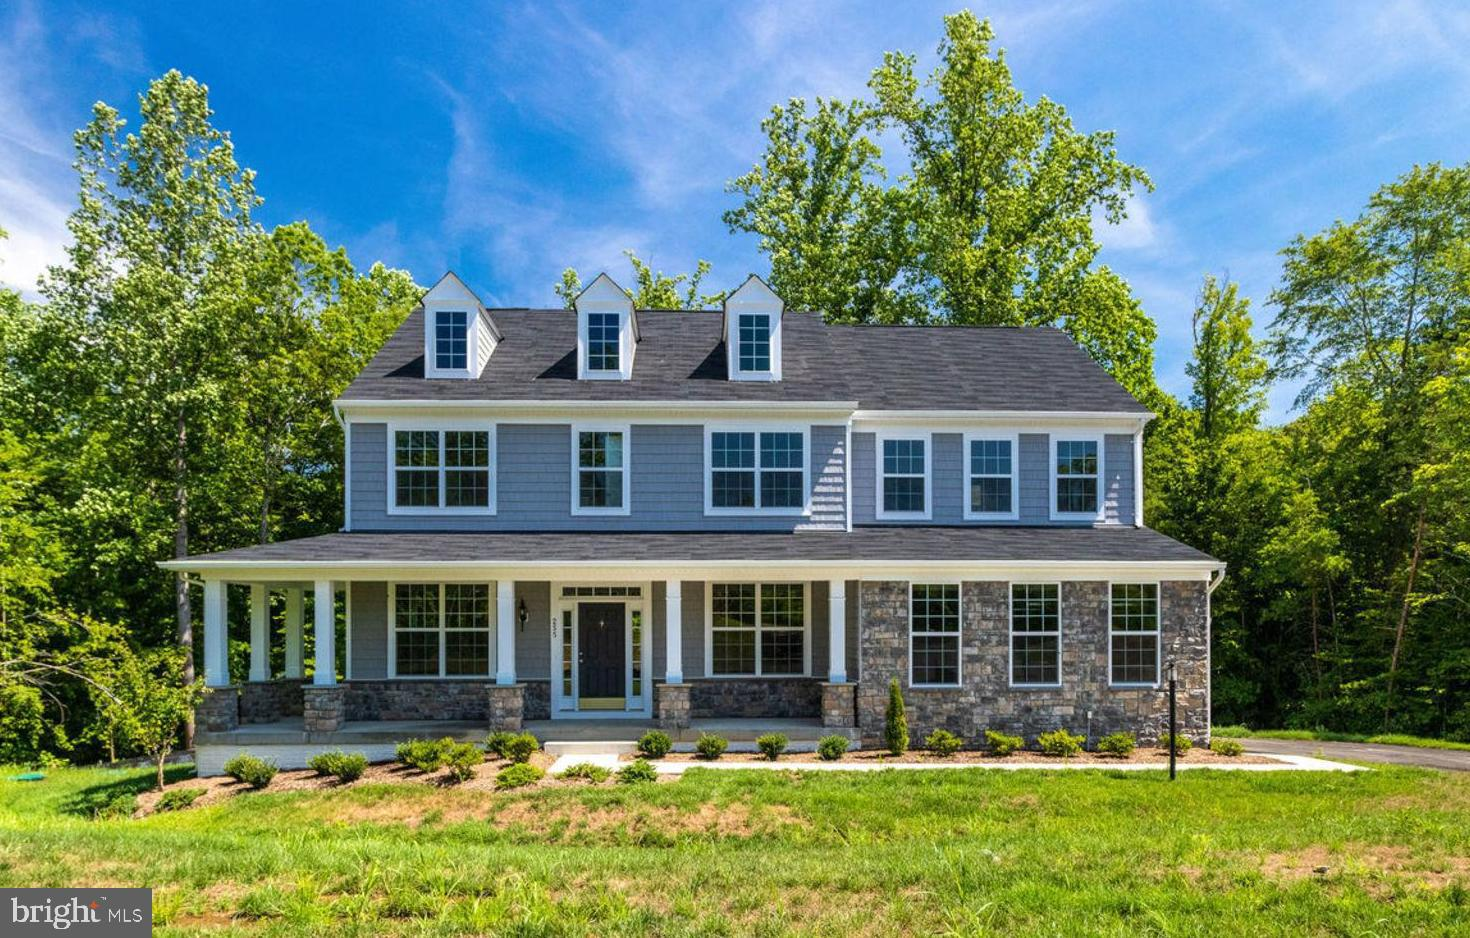 PHOTOS REPRESENTATIVE ONLY - CHARMING HOME WITH LARGE FRONT PORCH AND STONE FRONT.  MANY UPGRADES IN